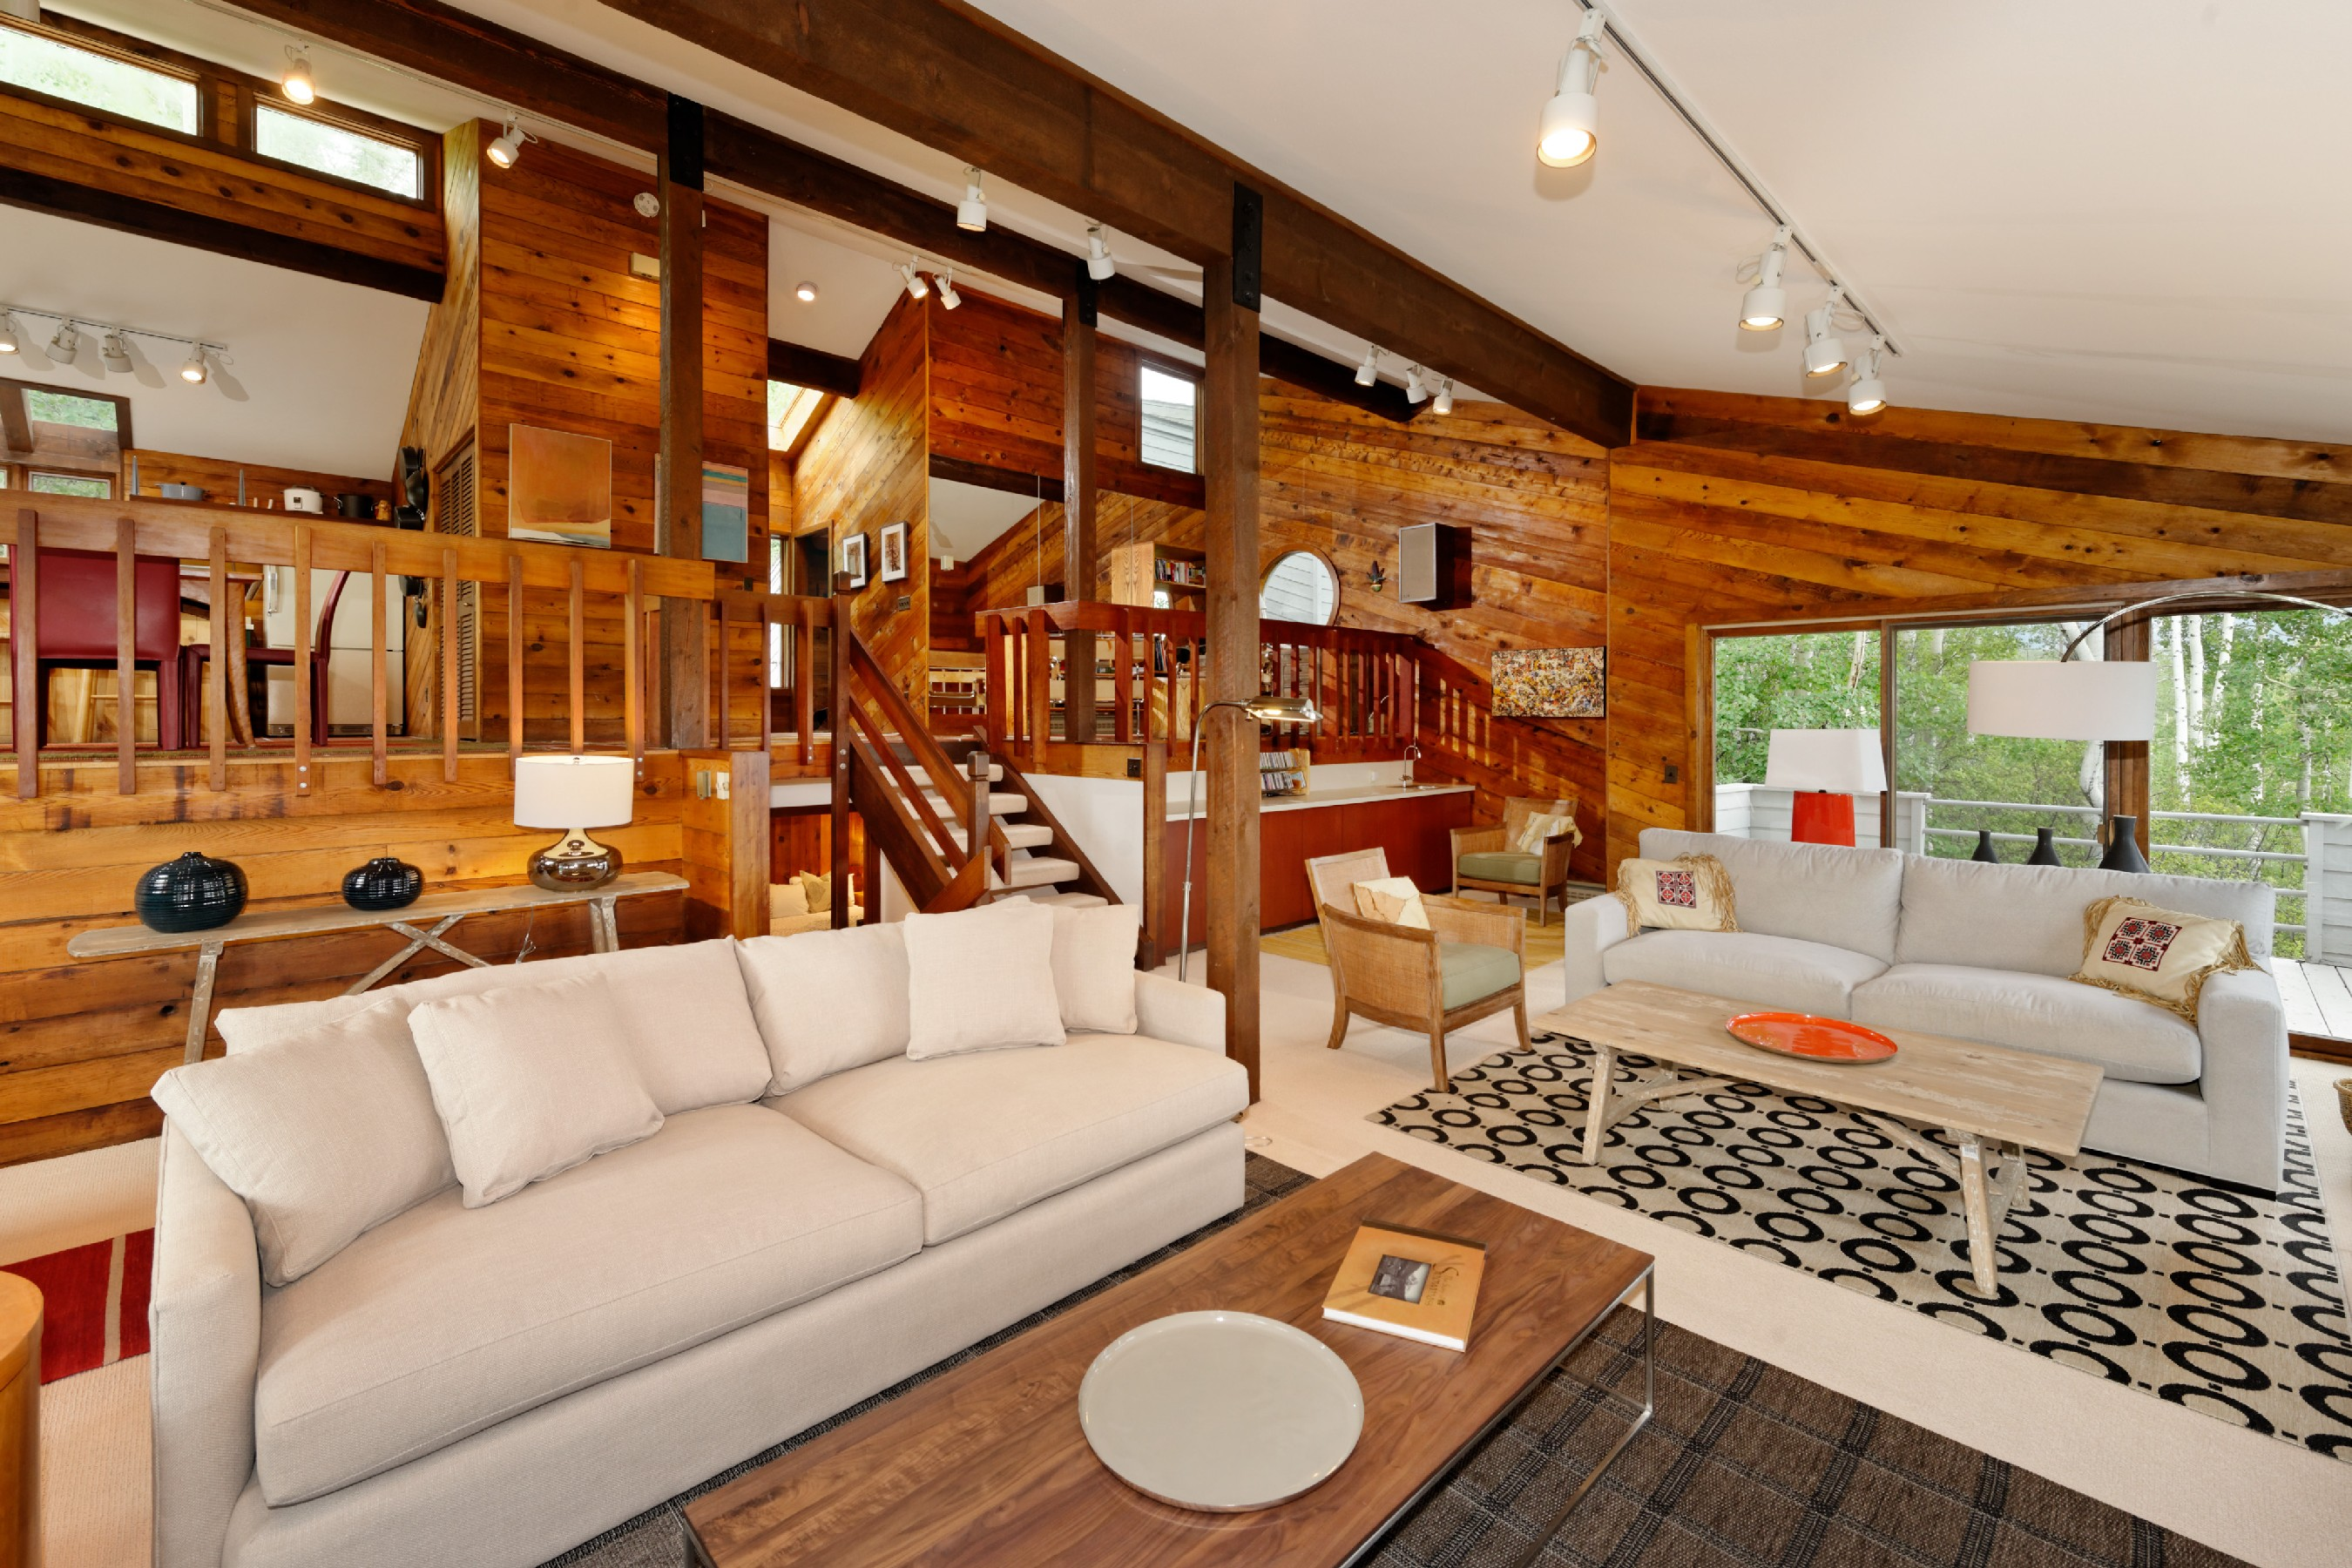 Single Family Home for Rent at 198 Bridge Lane Snowmass Village, Colorado, 81615 United States